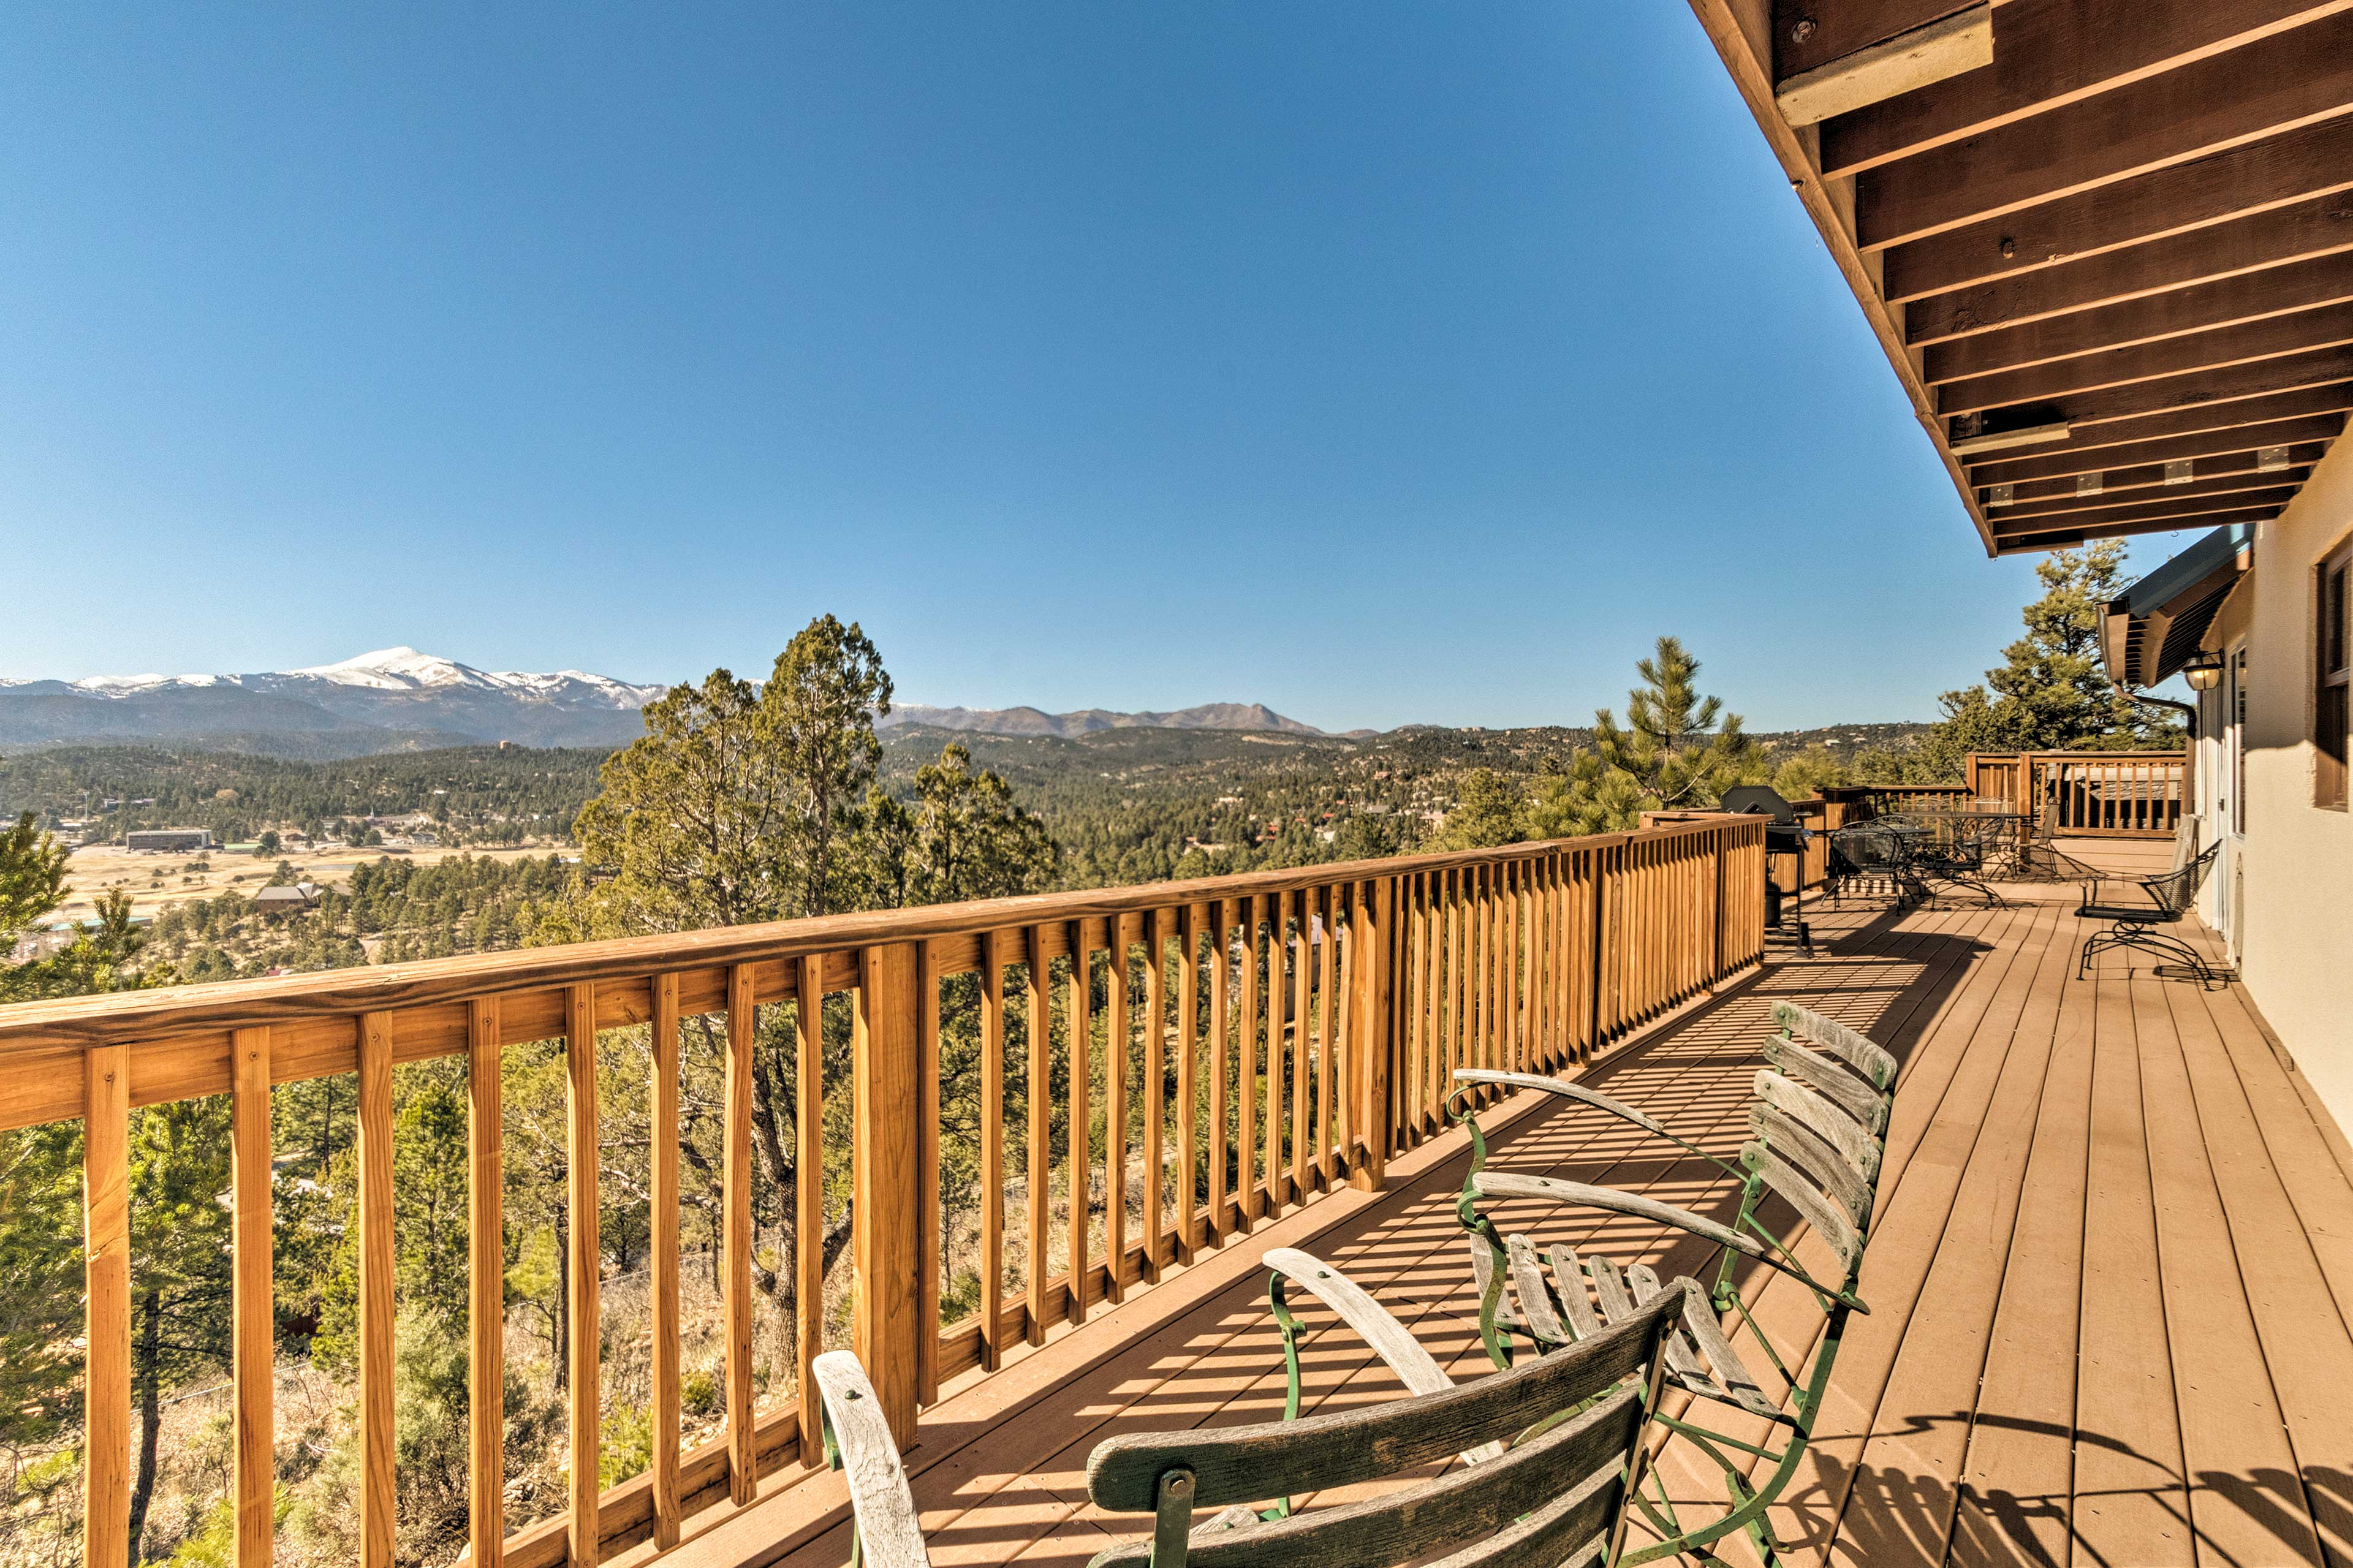 The expansive deck boasts breathtaking views of the New Mexico mountains.